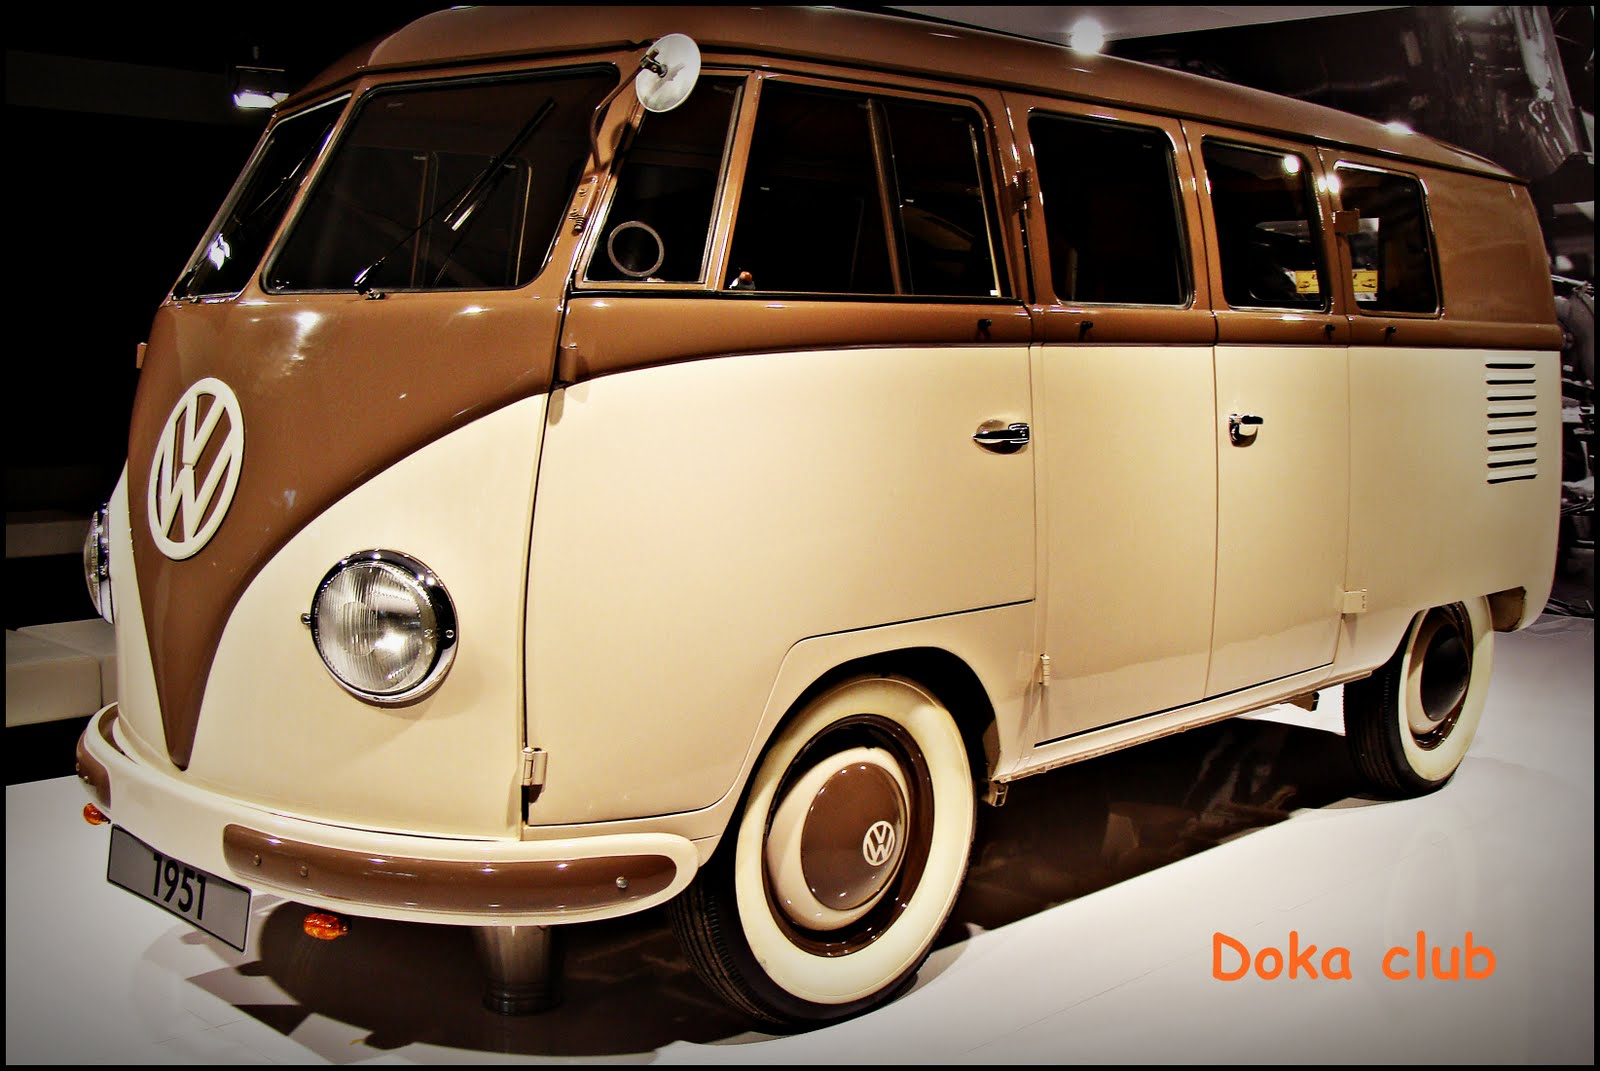 doka club north west tenerife vw autostadt t1 barndoor. Black Bedroom Furniture Sets. Home Design Ideas